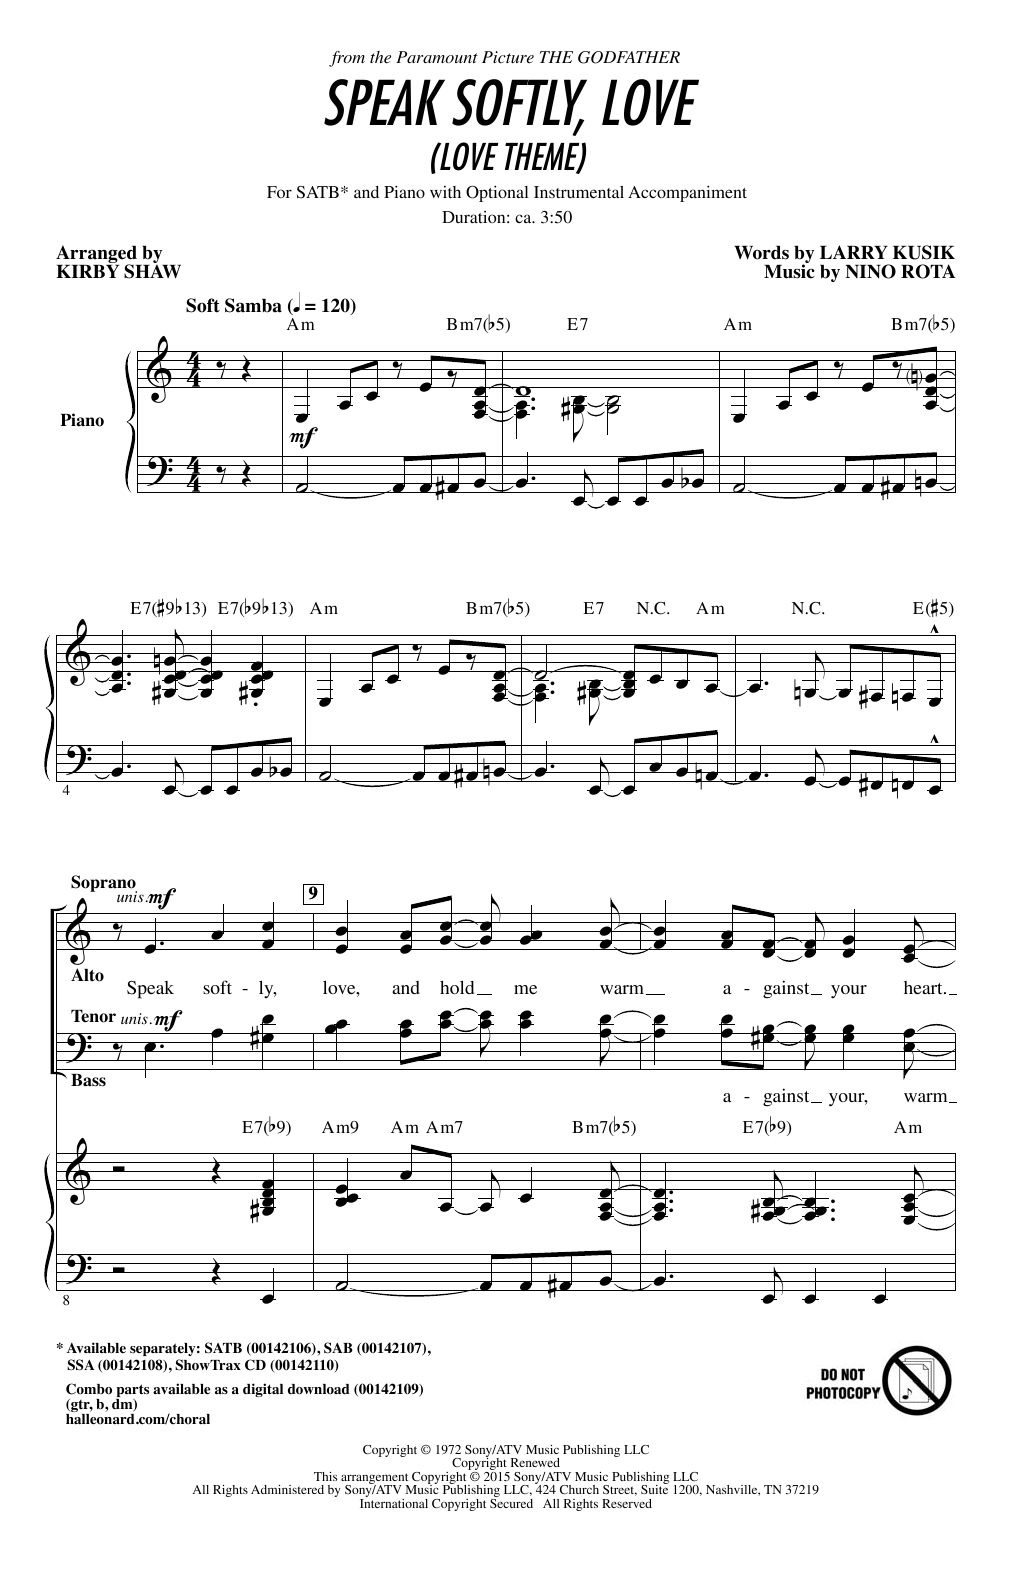 Speak Softly Love (Godfather Theme) (arr. Kirby Shaw) (SATB Choir)